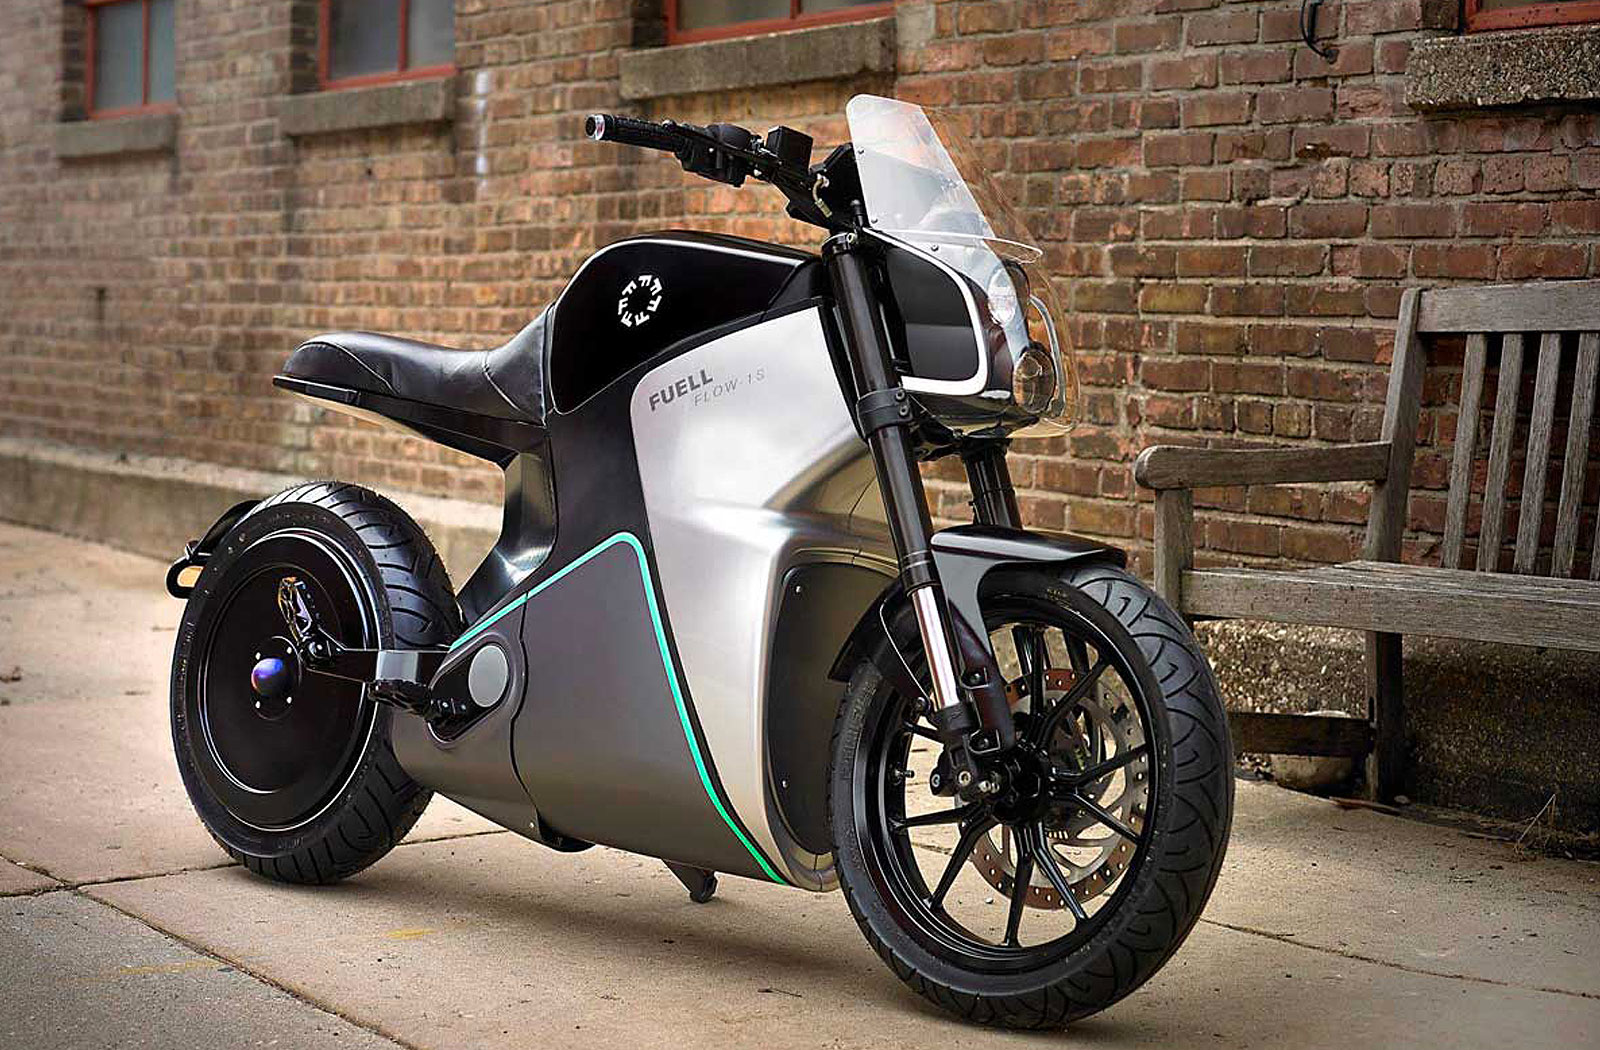 Erik Buell's Fuell Fllow electric motorcycle